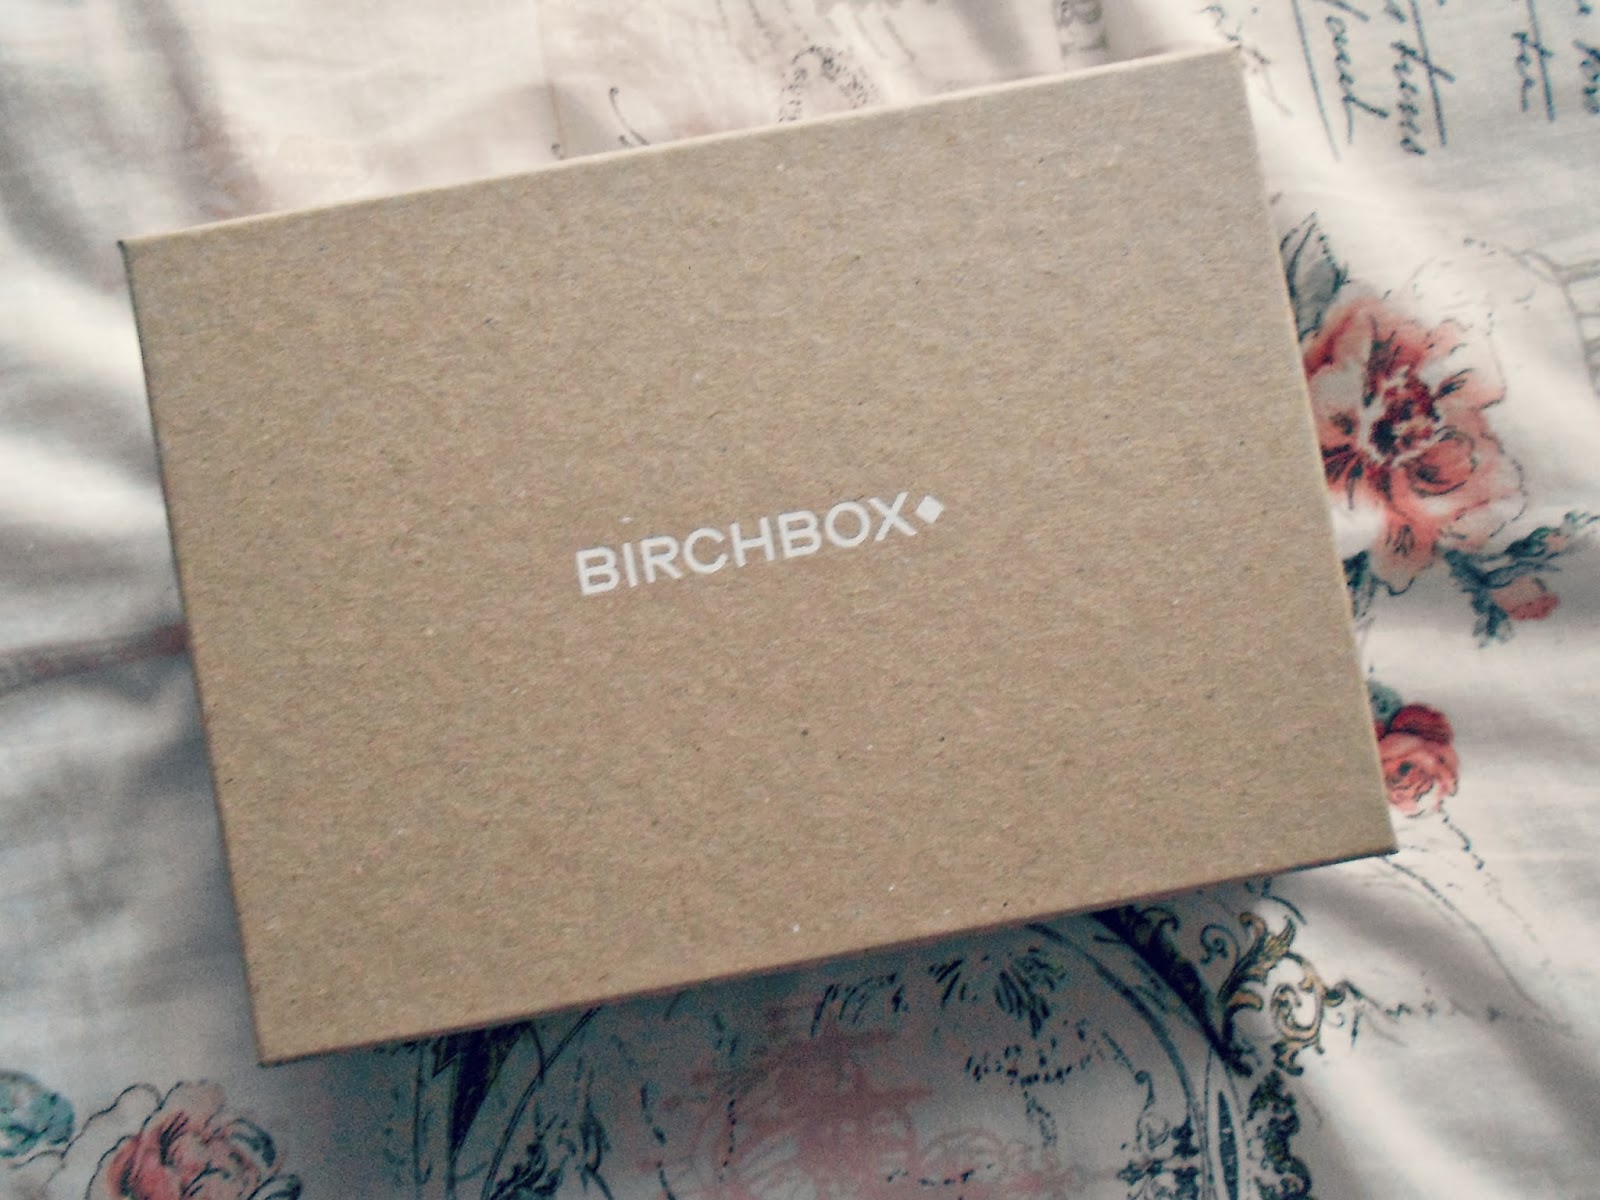 My January Birchbox